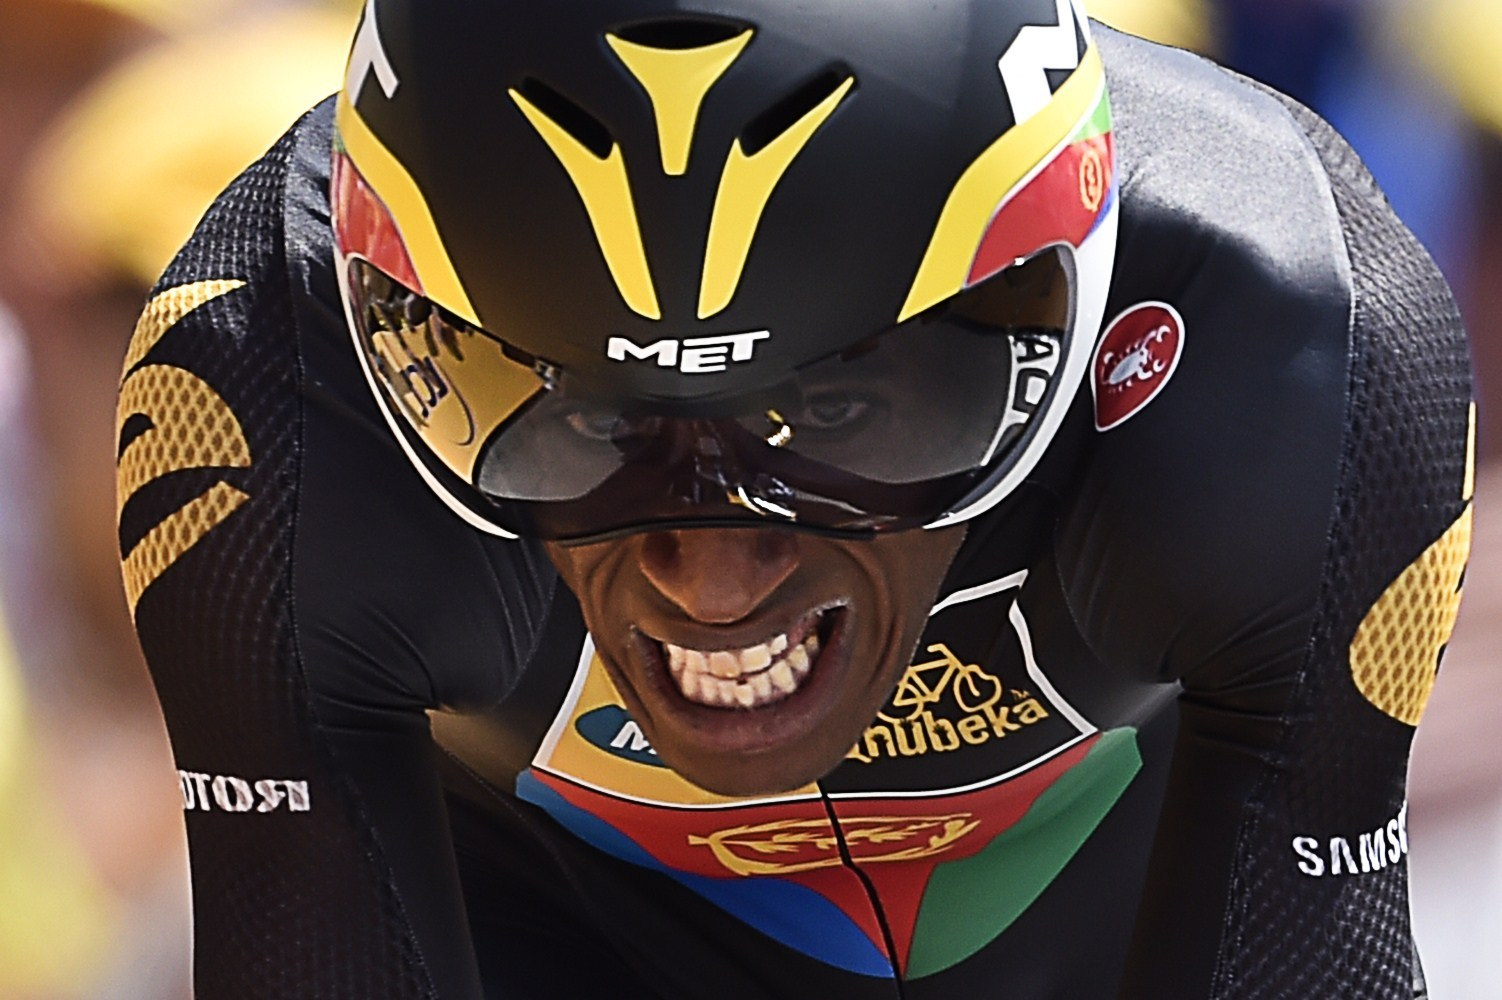 They're The First Black Africans To Ride In The Tour De France